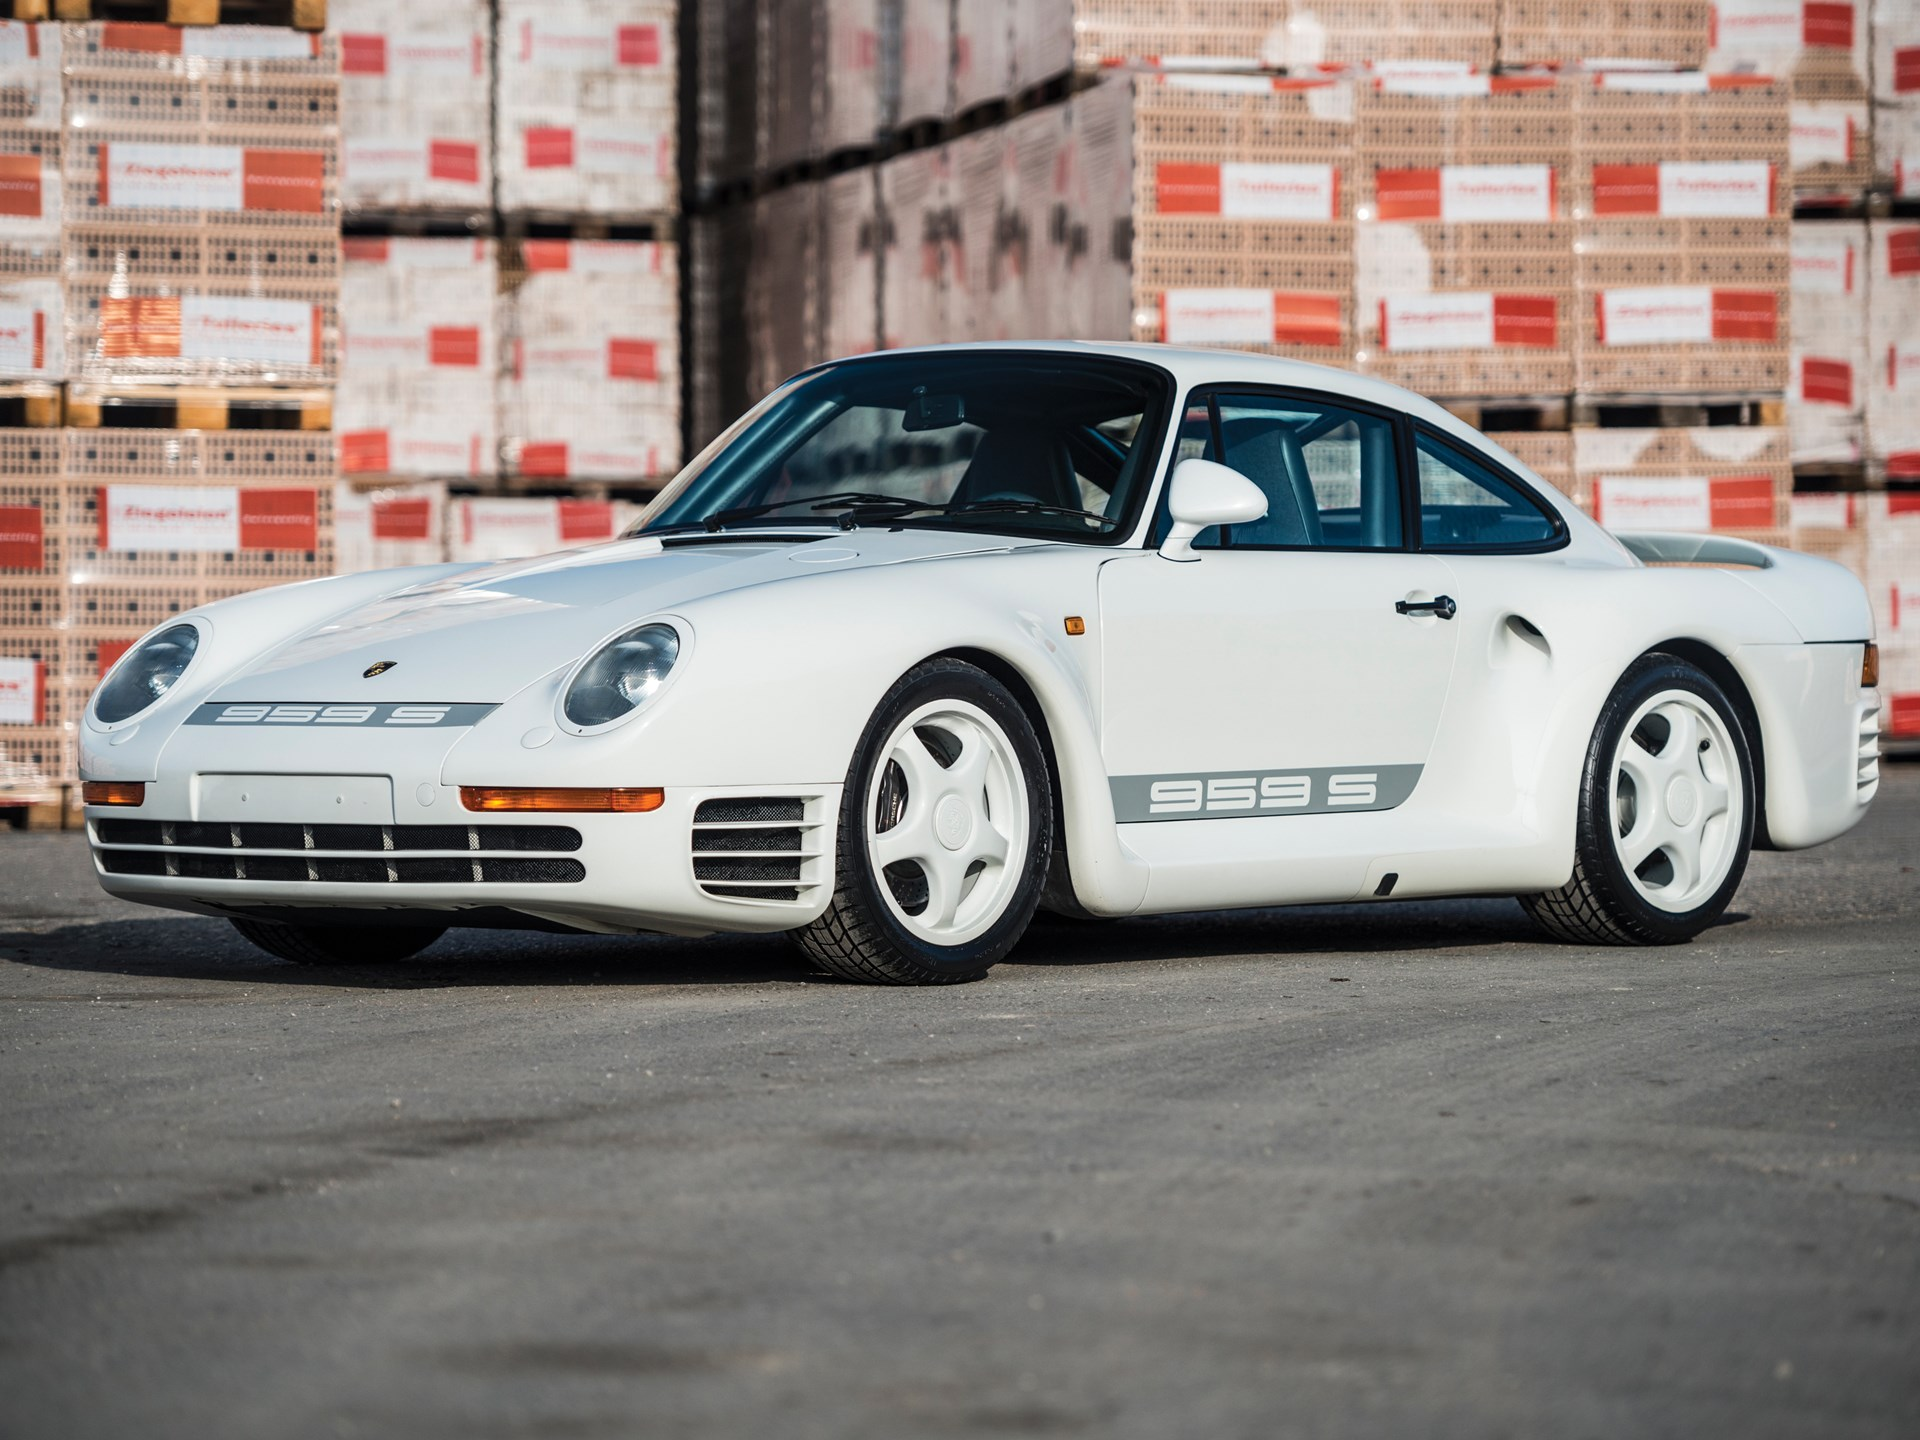 Porsche 959 For Sale >> Rm Sotheby S 1988 Porsche 959 Sport Paris 2017